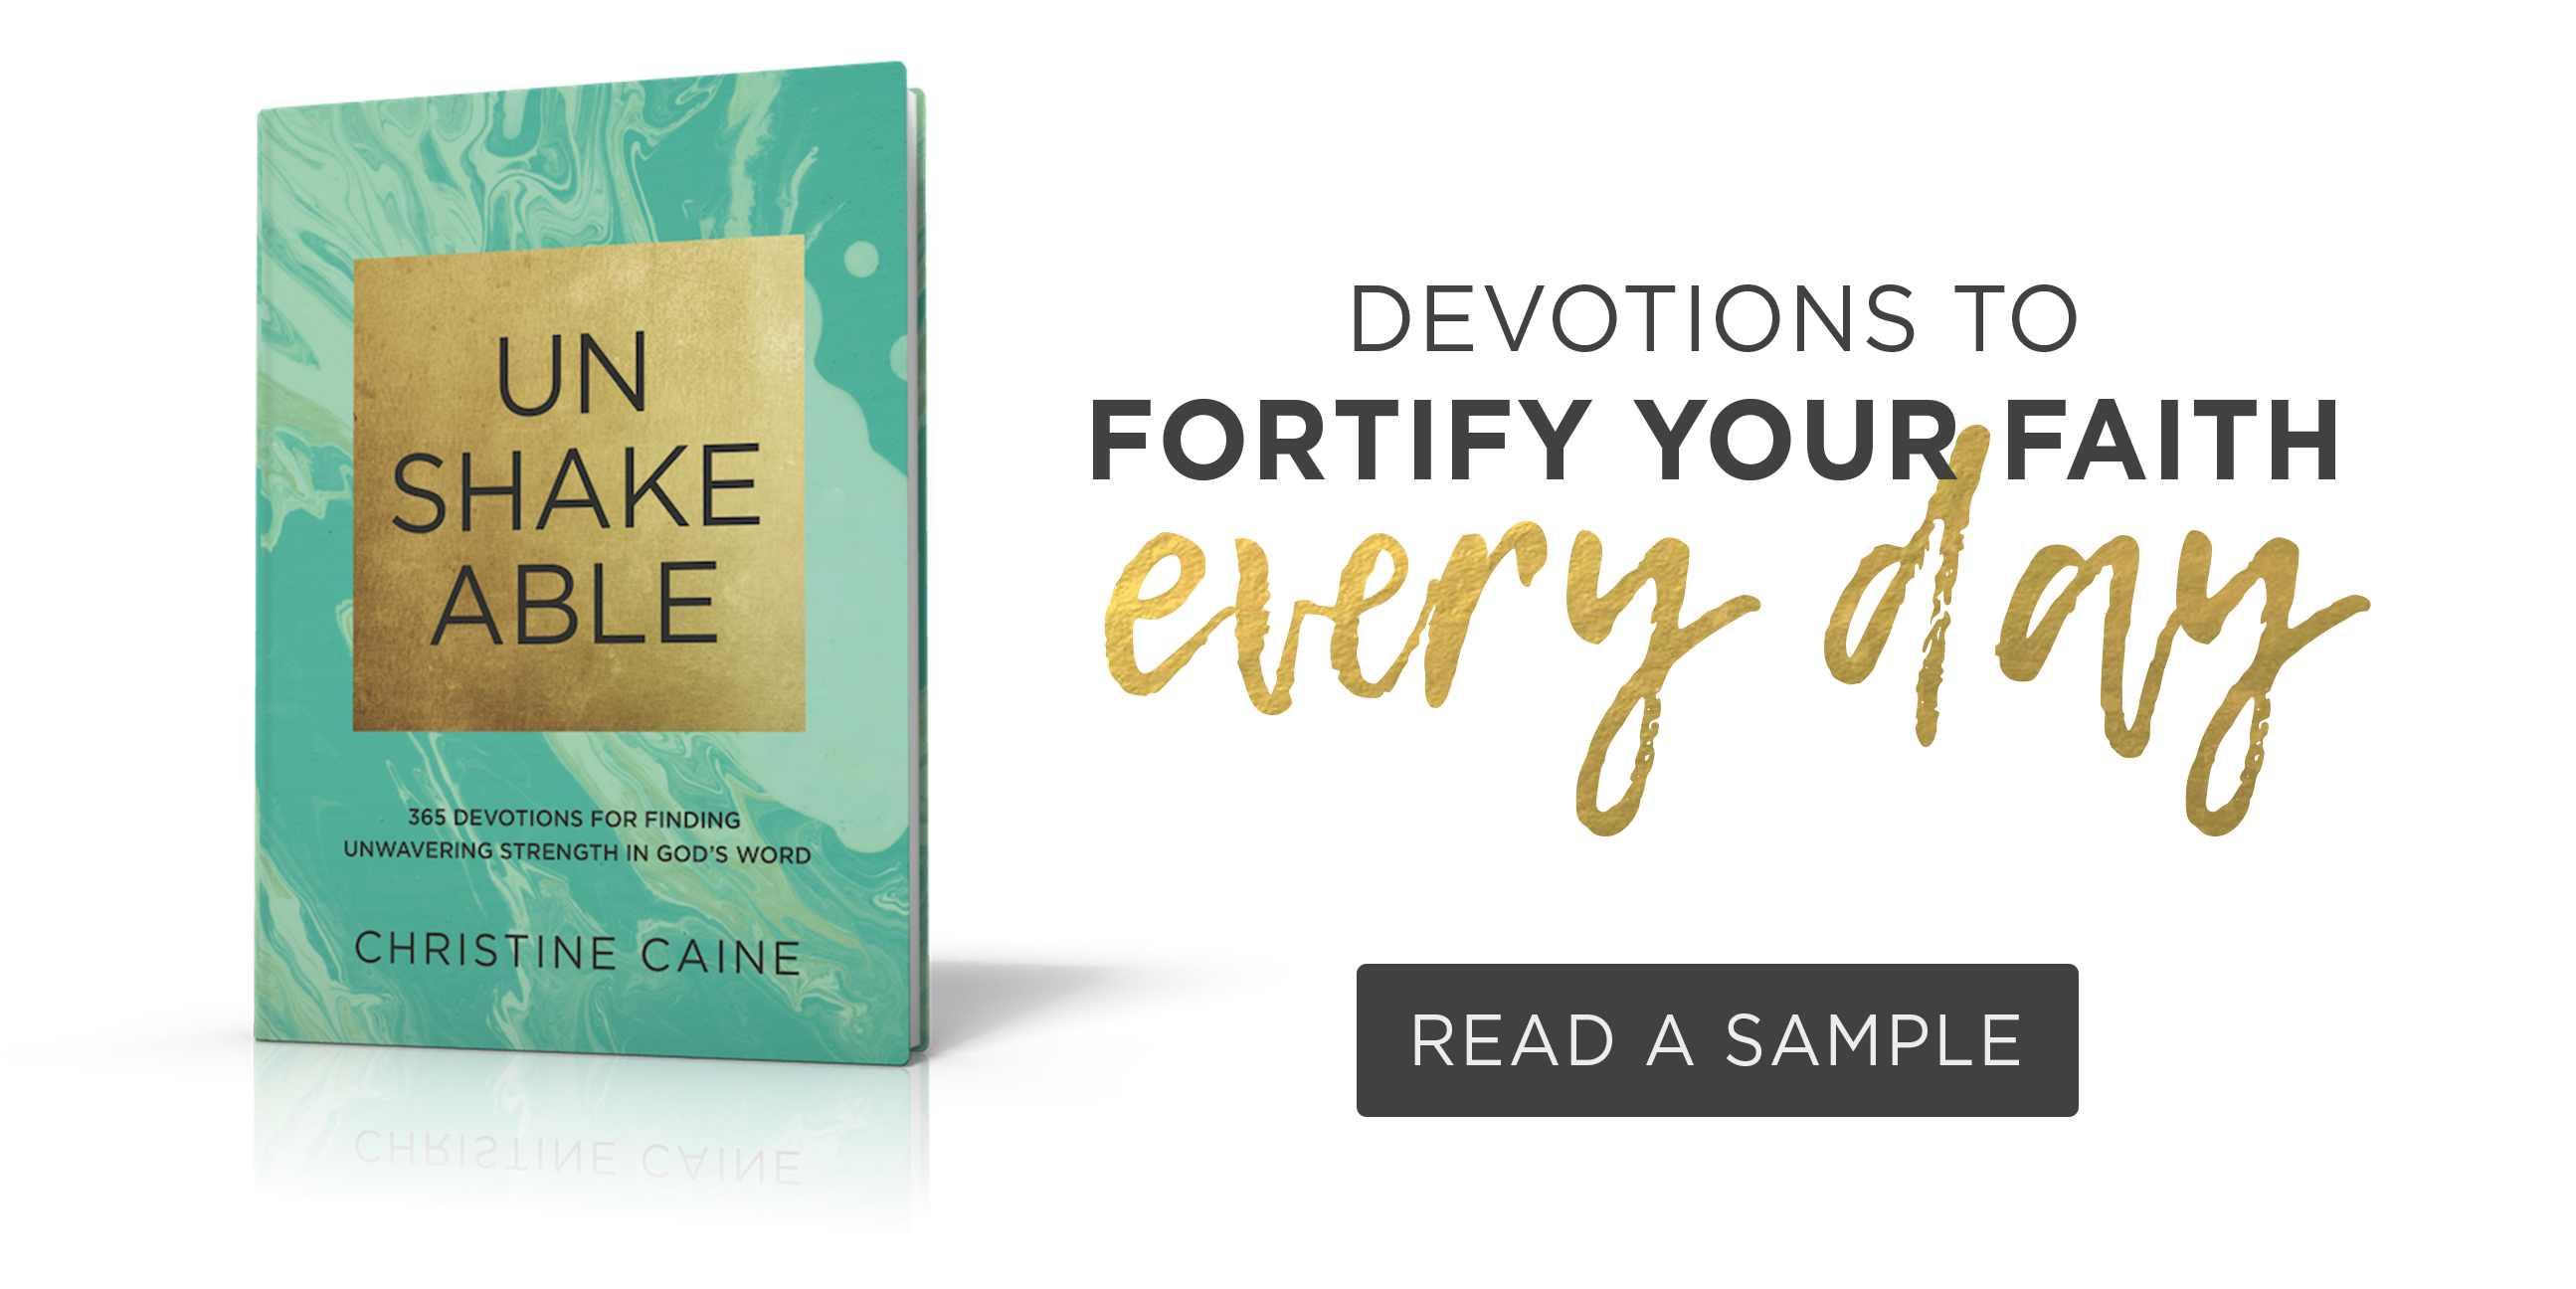 Unshakeable by Christine Caine.